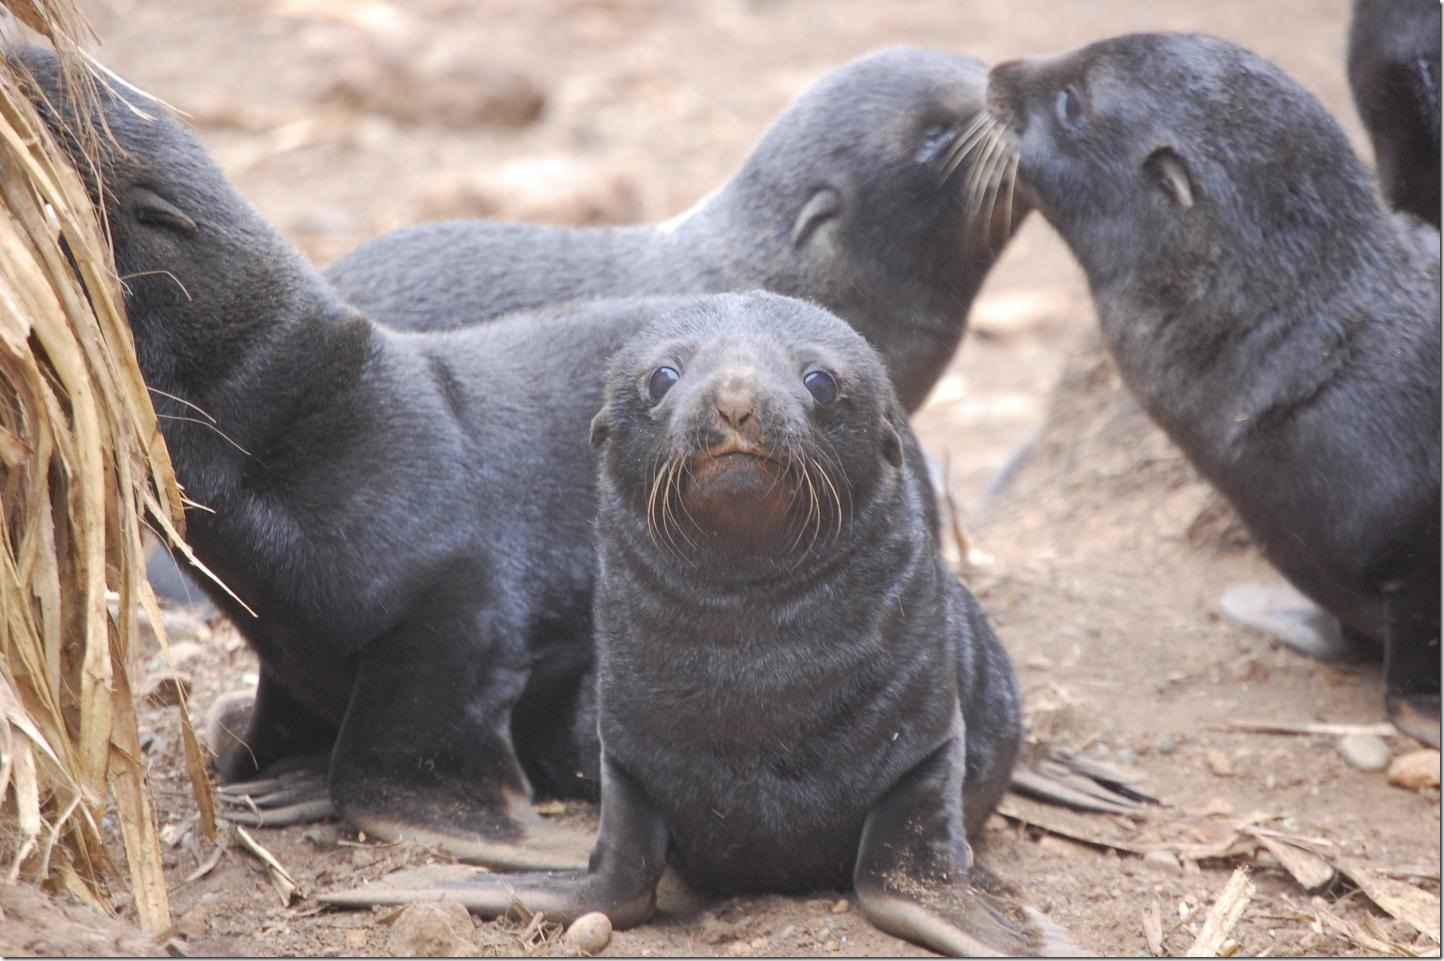 IMAGE: On Chile's Guafo Island, all South American fur seal pups show some degree of hookworm infection. Credit: Dr. Mauricio Seguel, University of Georgia